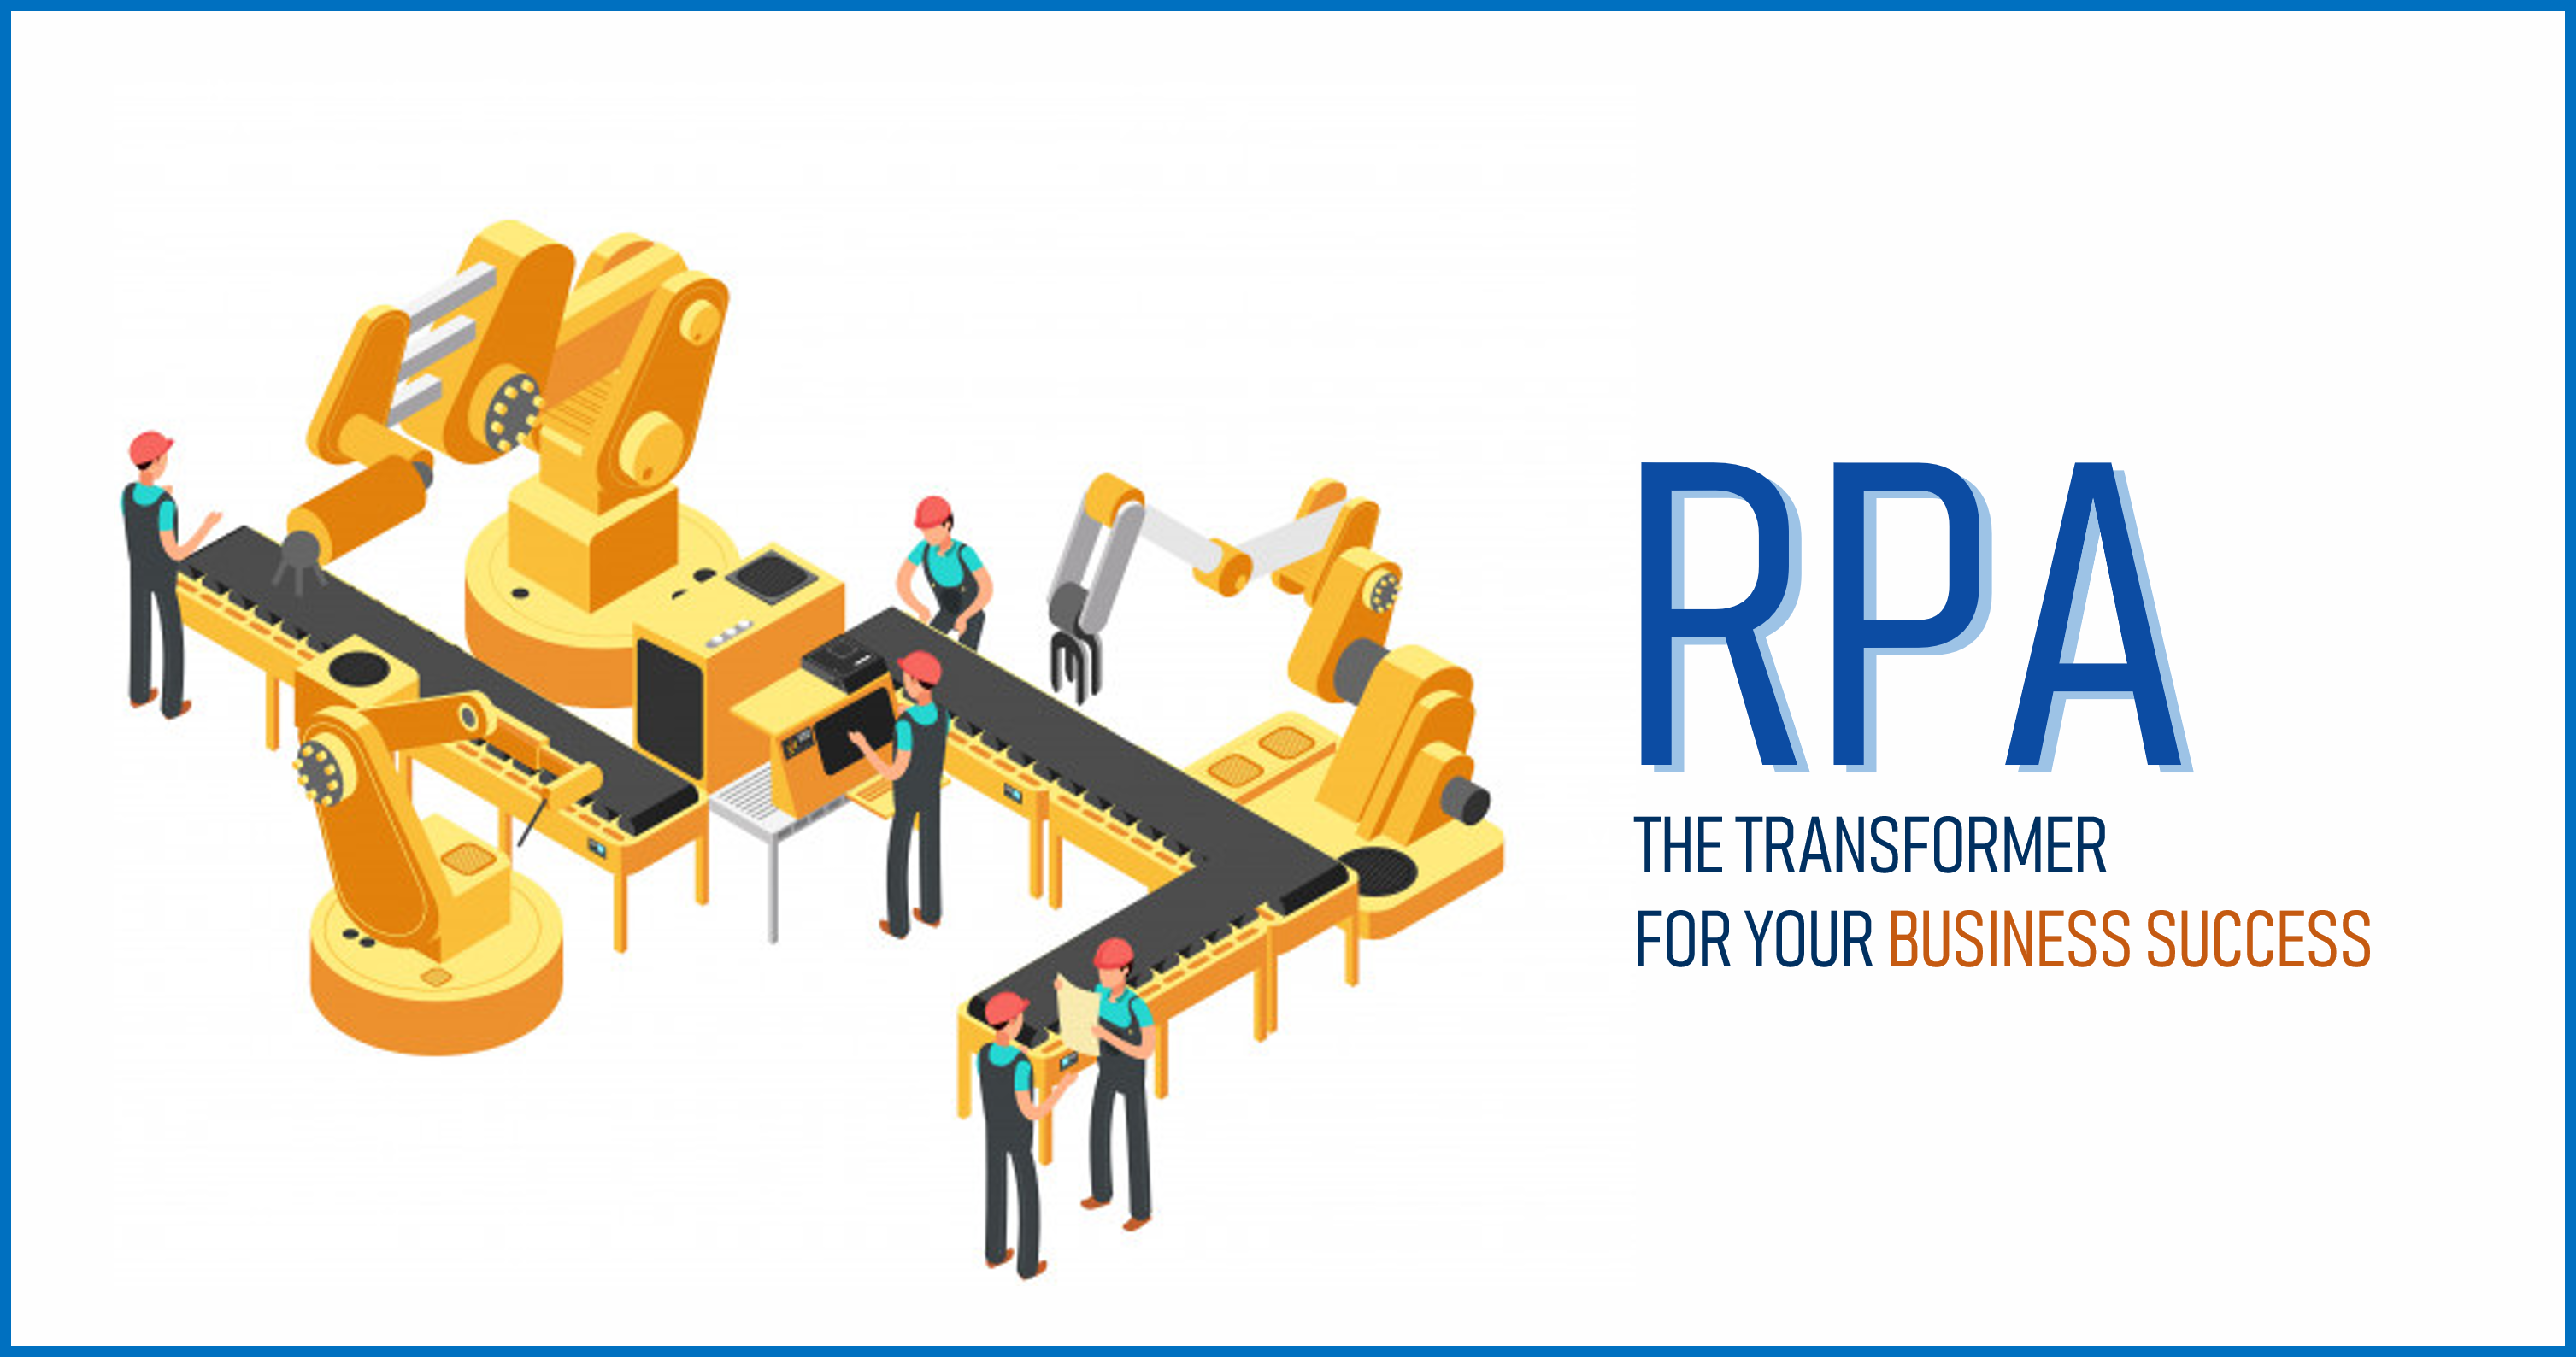 RPA: THE TRANSFORMER FOR YOUR BUSINESS SUCCESS